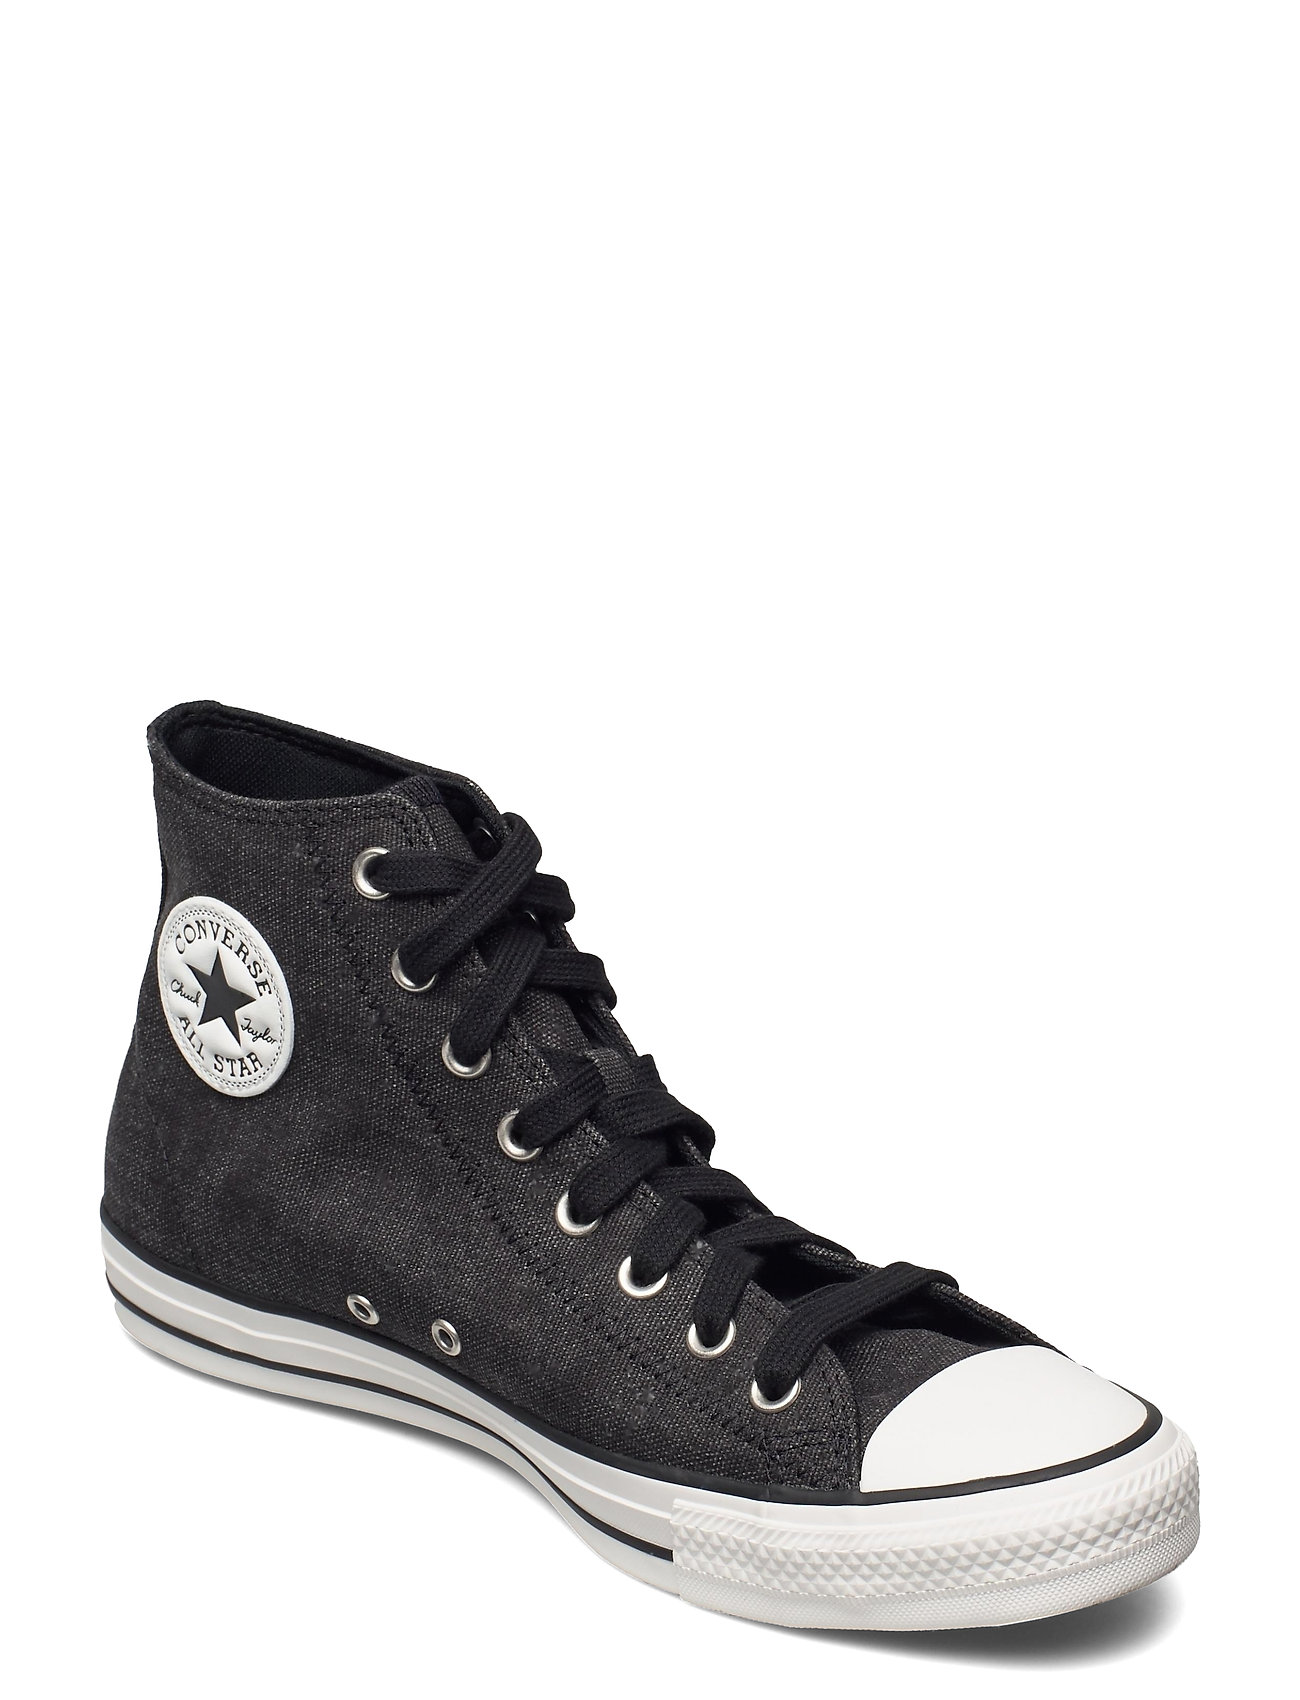 Image of Ctas Hi Black/Black/Egret High-top Sneakers Sort Converse (3503505247)